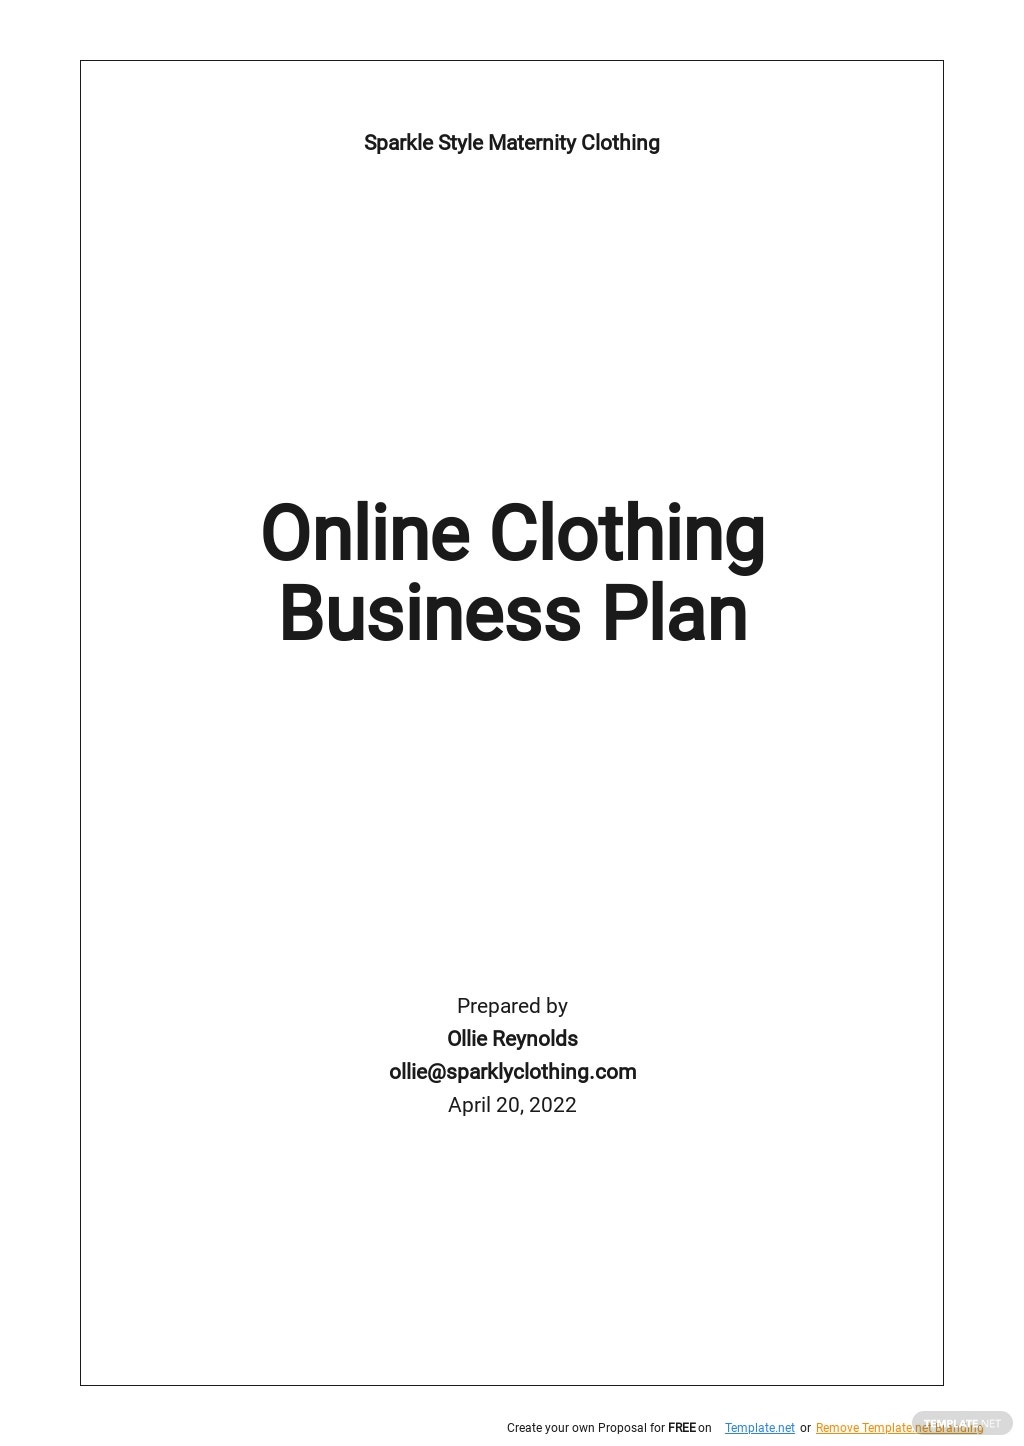 Online Clothing Business Plan Template.jpe